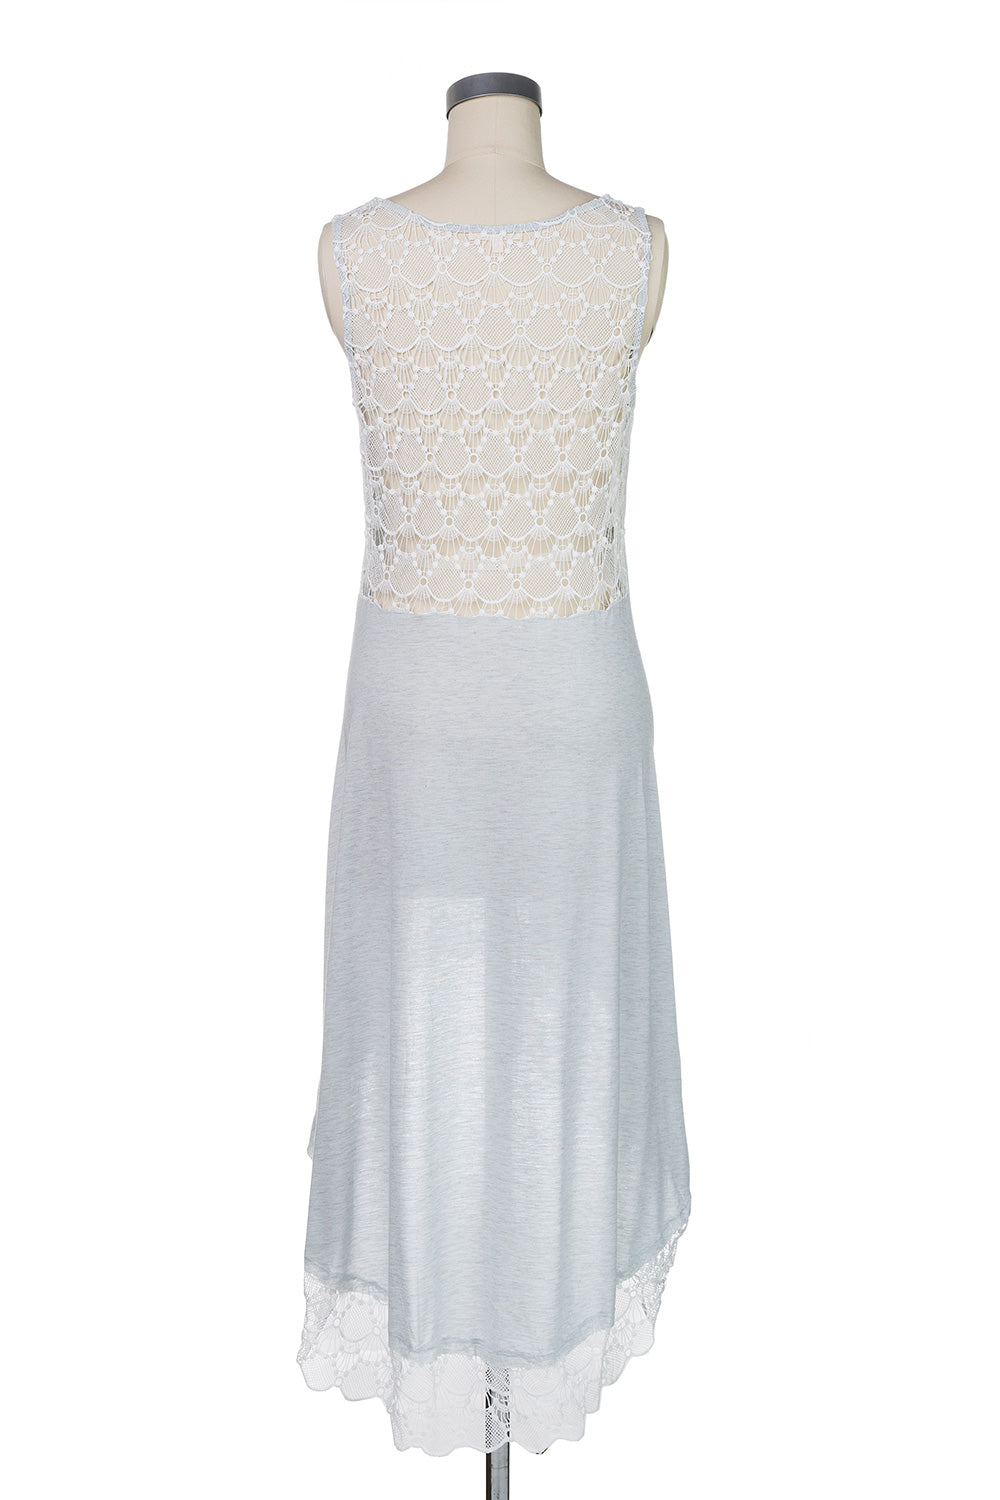 Type 2 Light and Lacey Dress